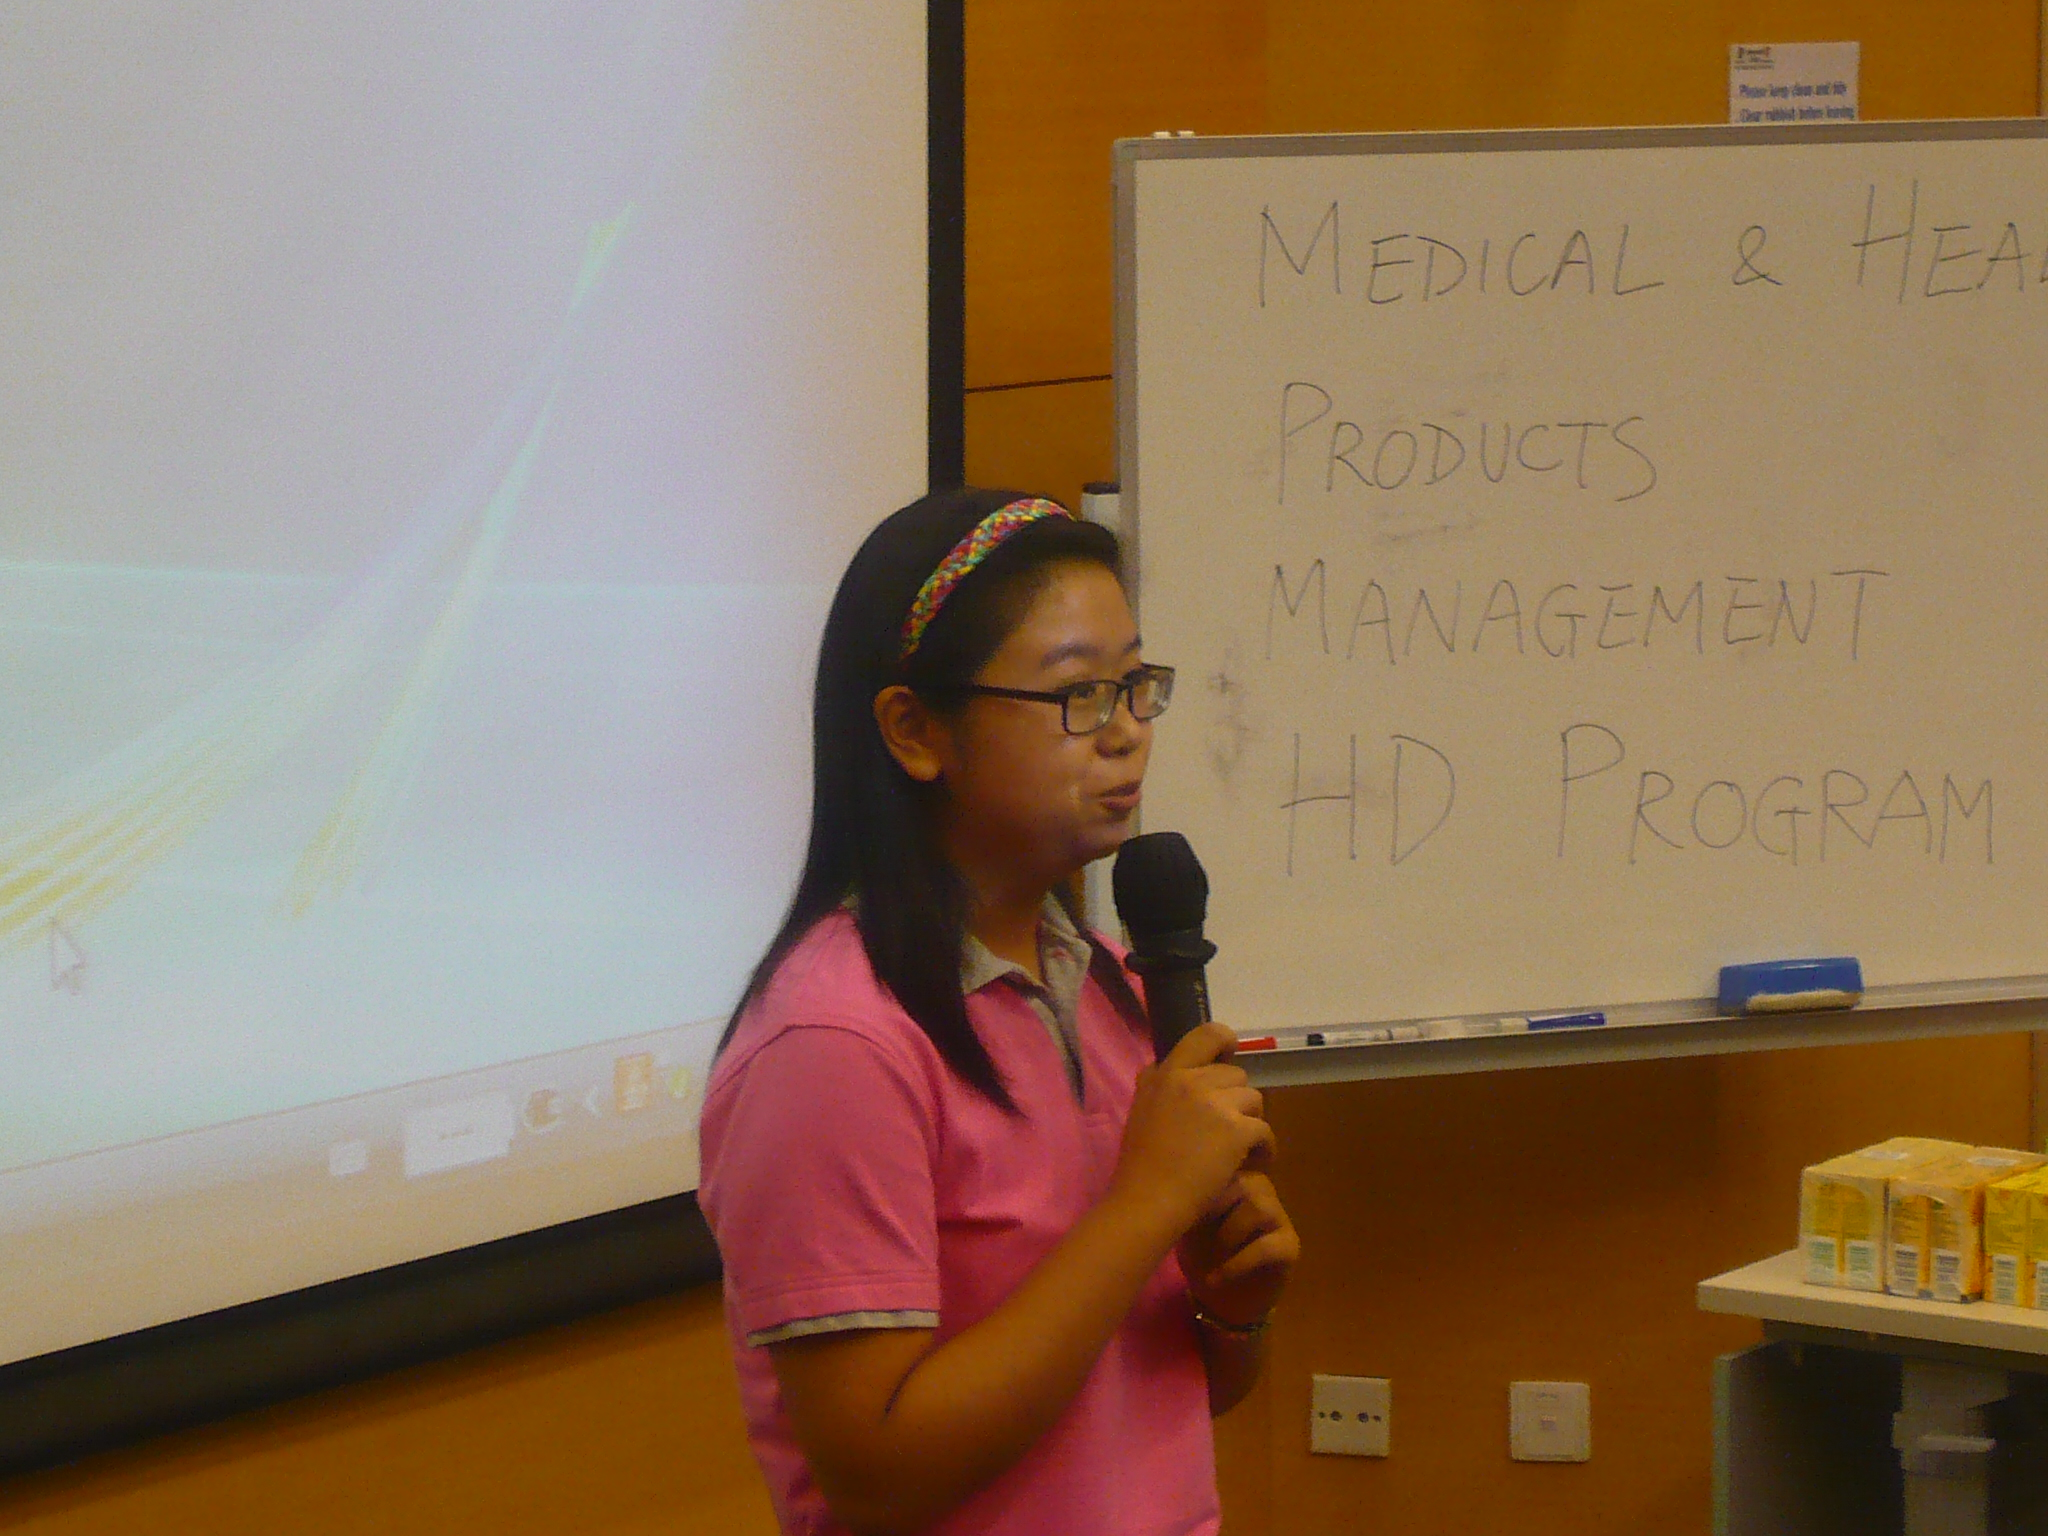 Getting To Know Us (HD in Medical and Health Products Management) - Photo - 25